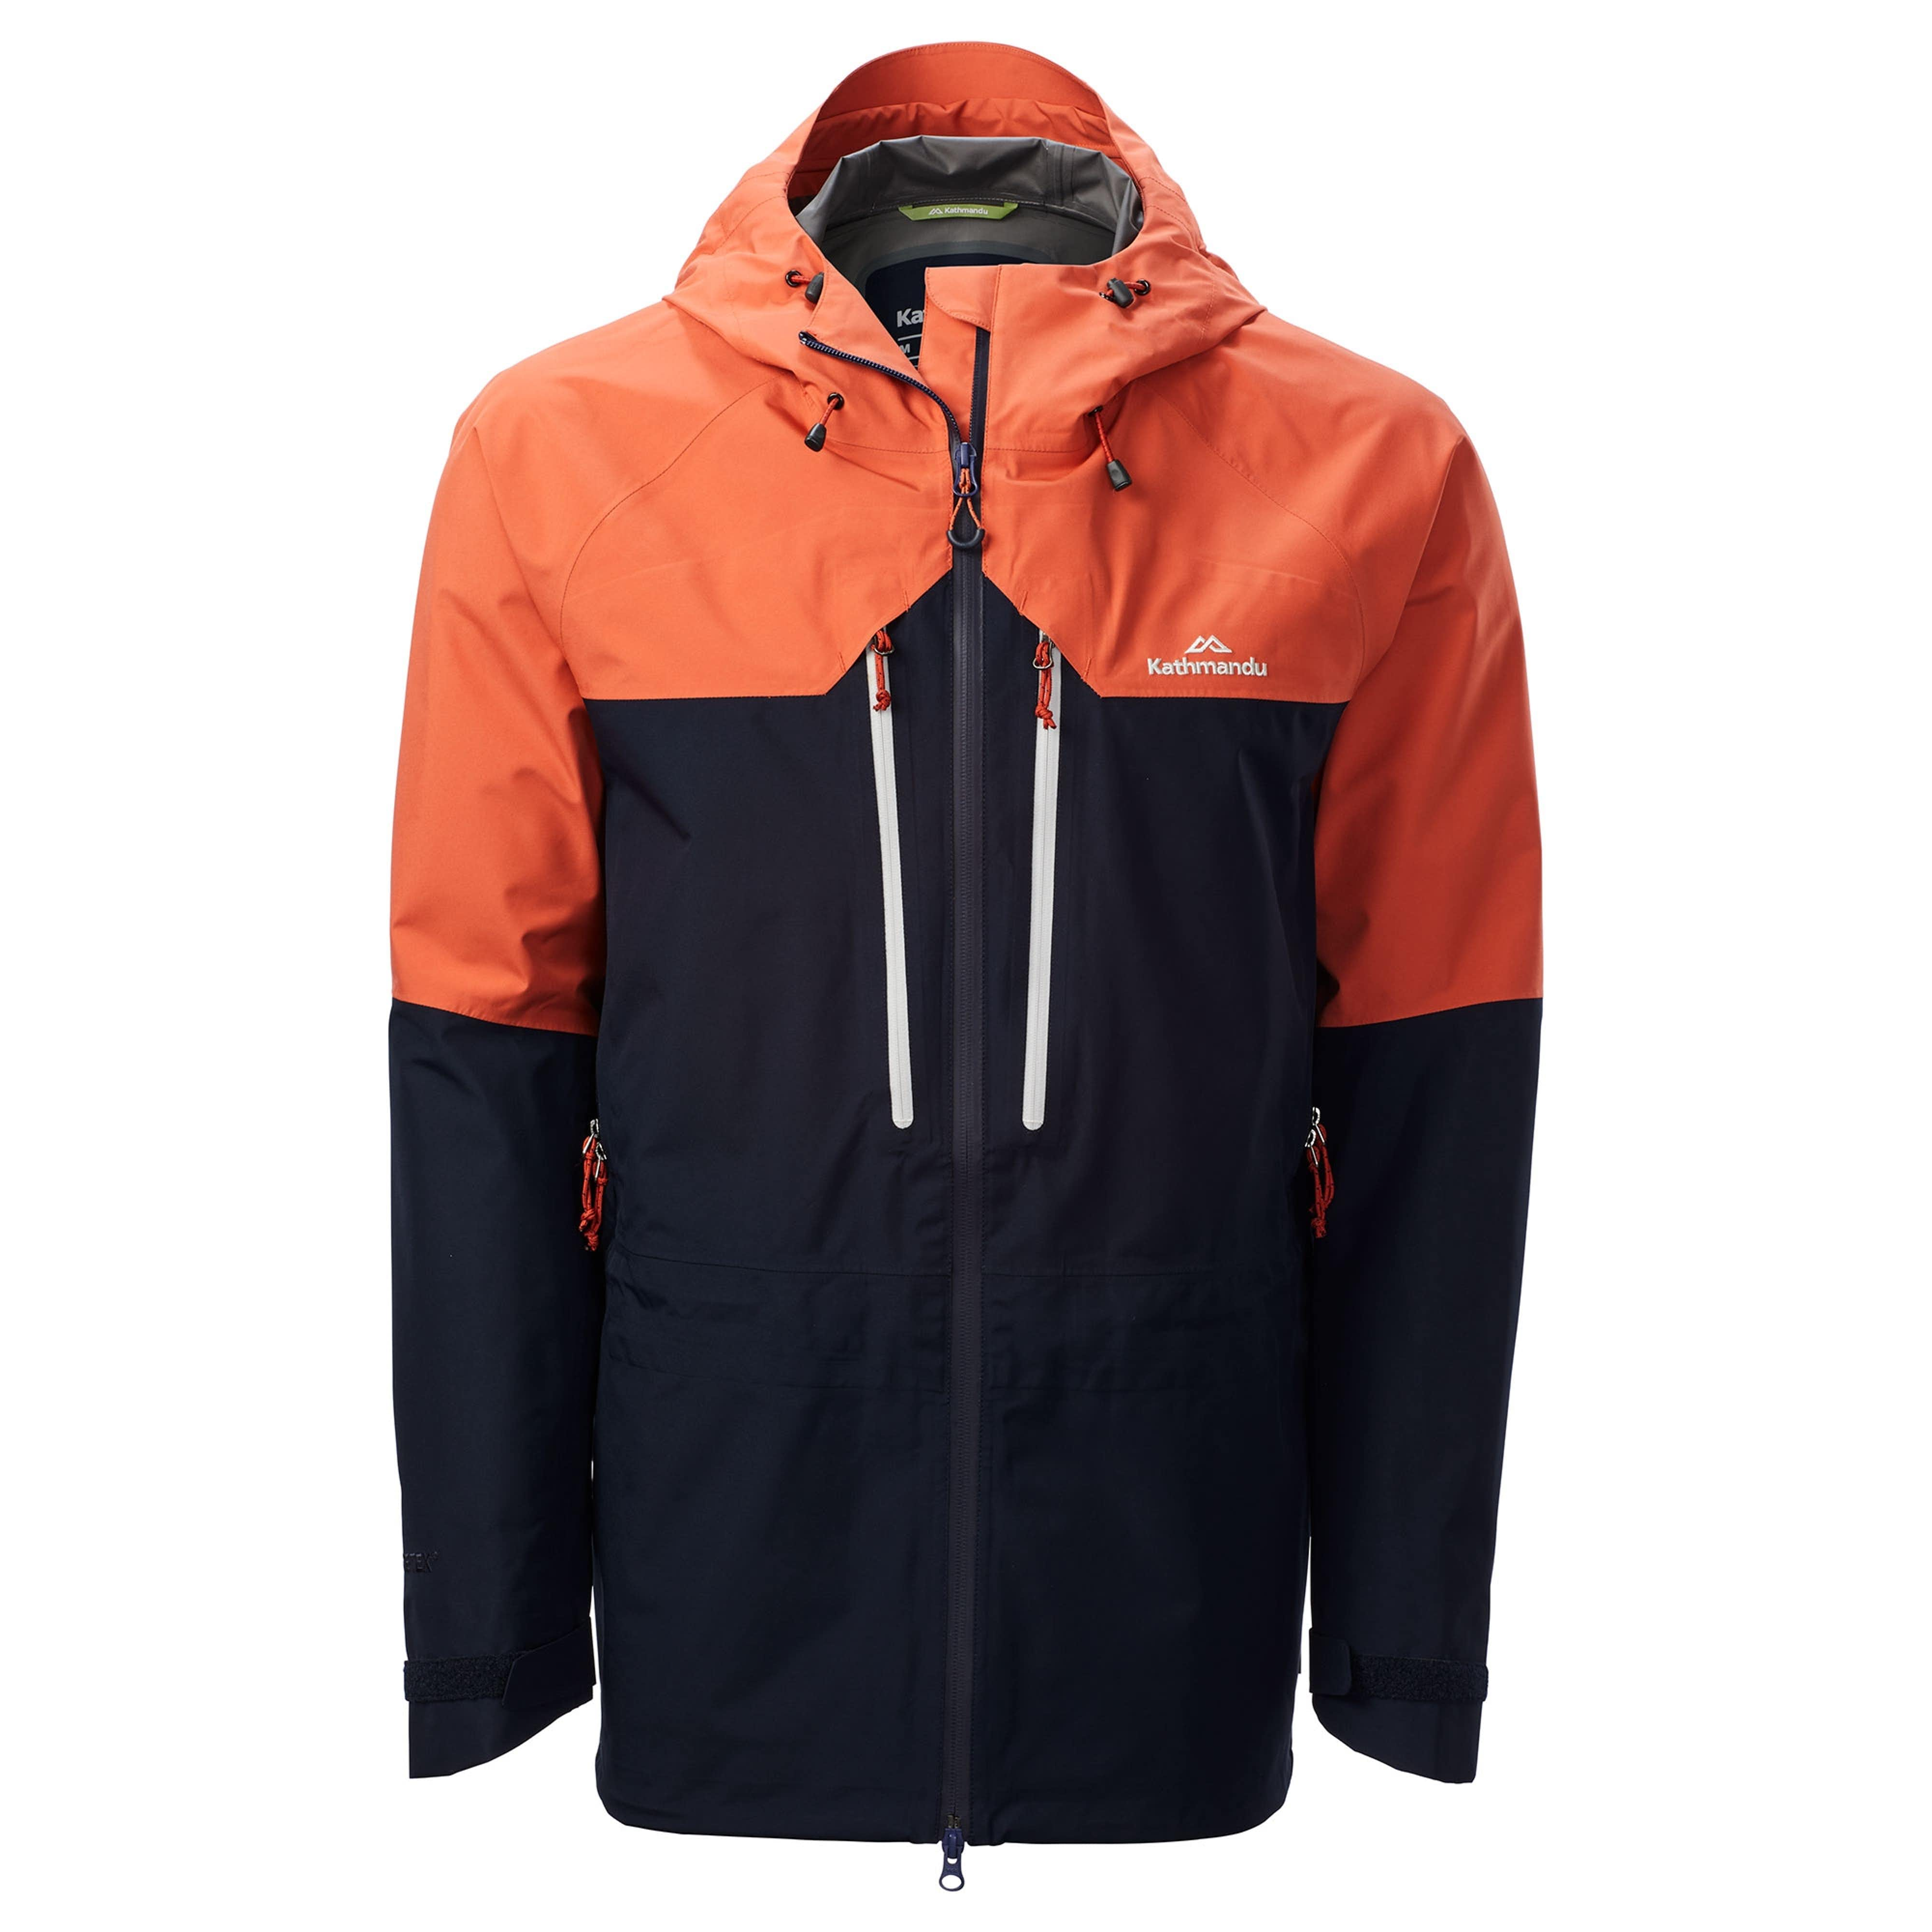 61baa30b Kathmandu Outlet | Reduced for Clearance Travel & Adventure Gear